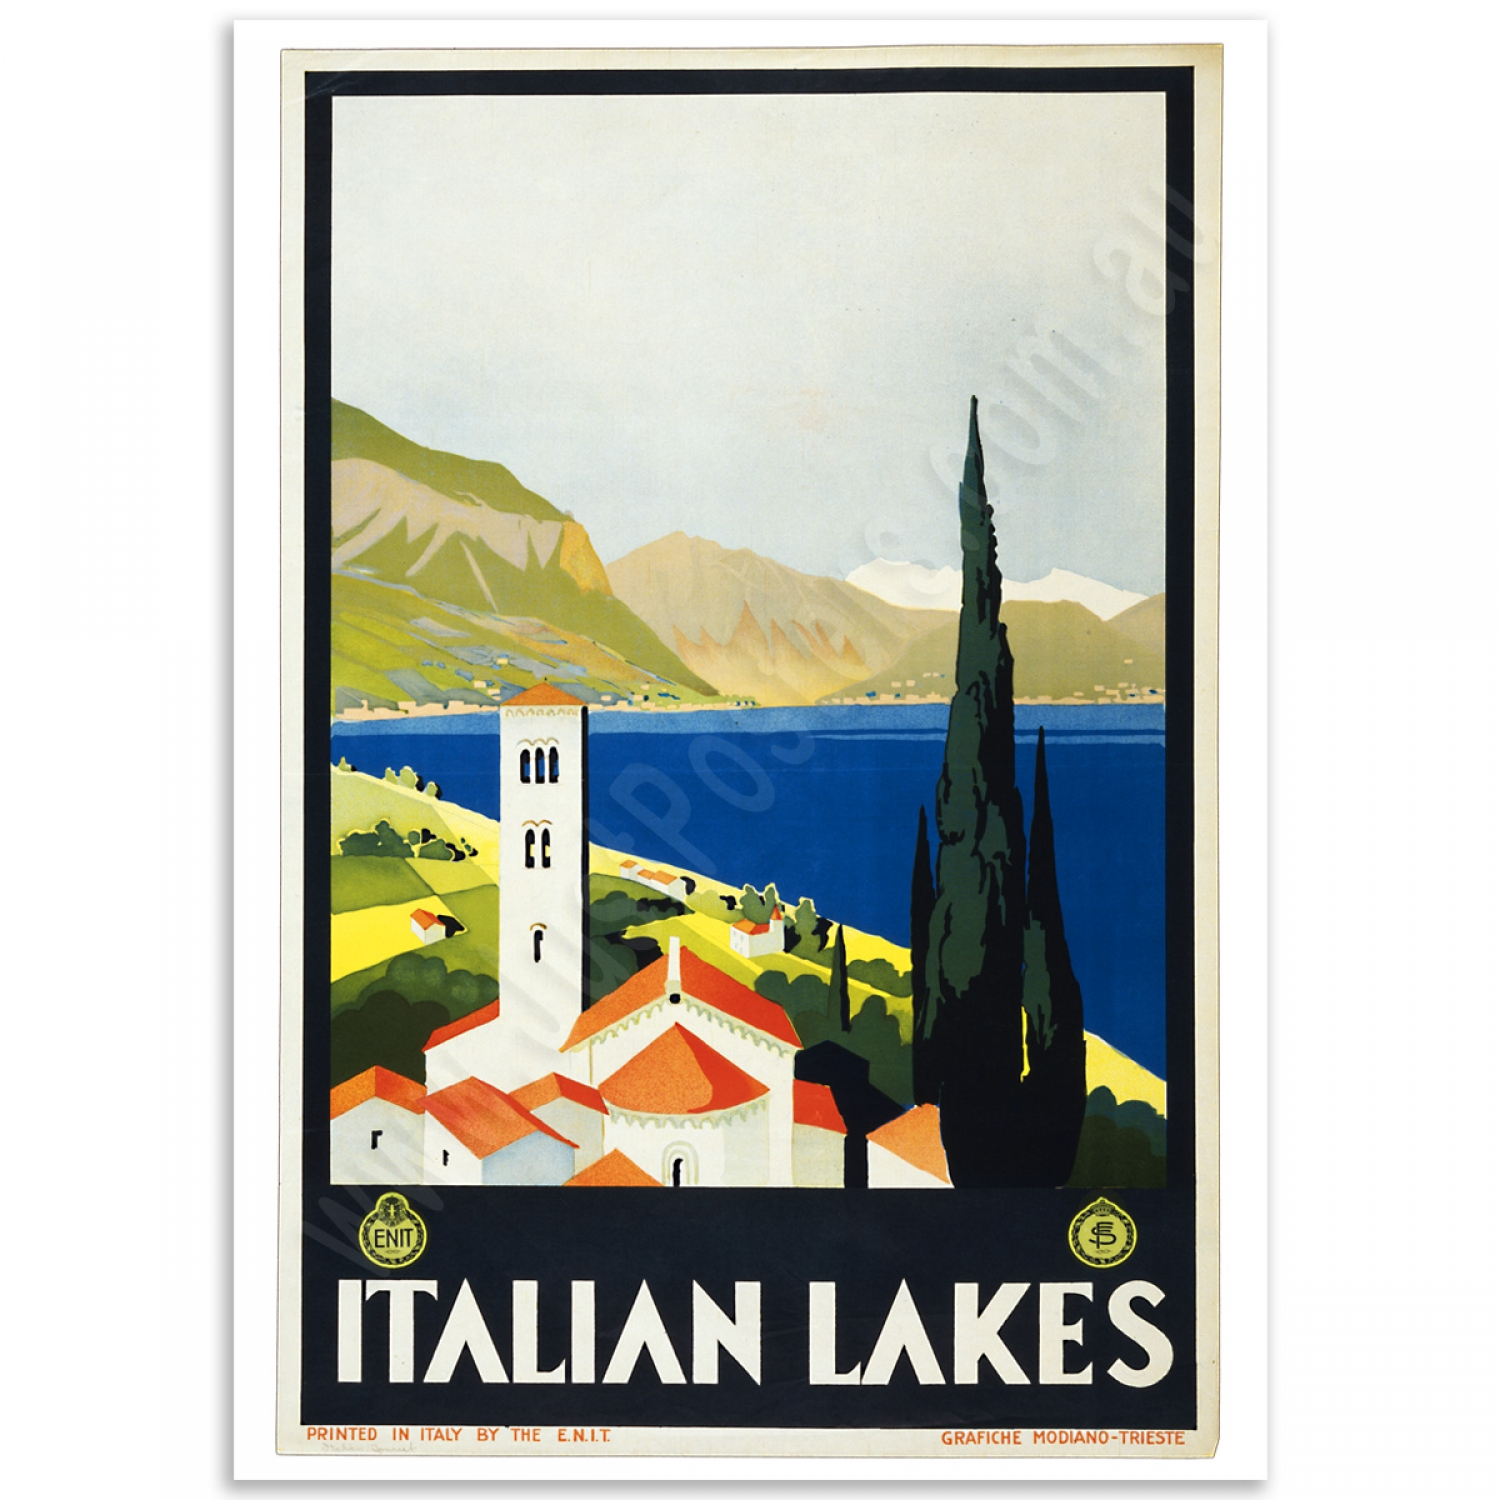 Vintage Travel Trailers: Italian Lakes - Vintage Travel Poster